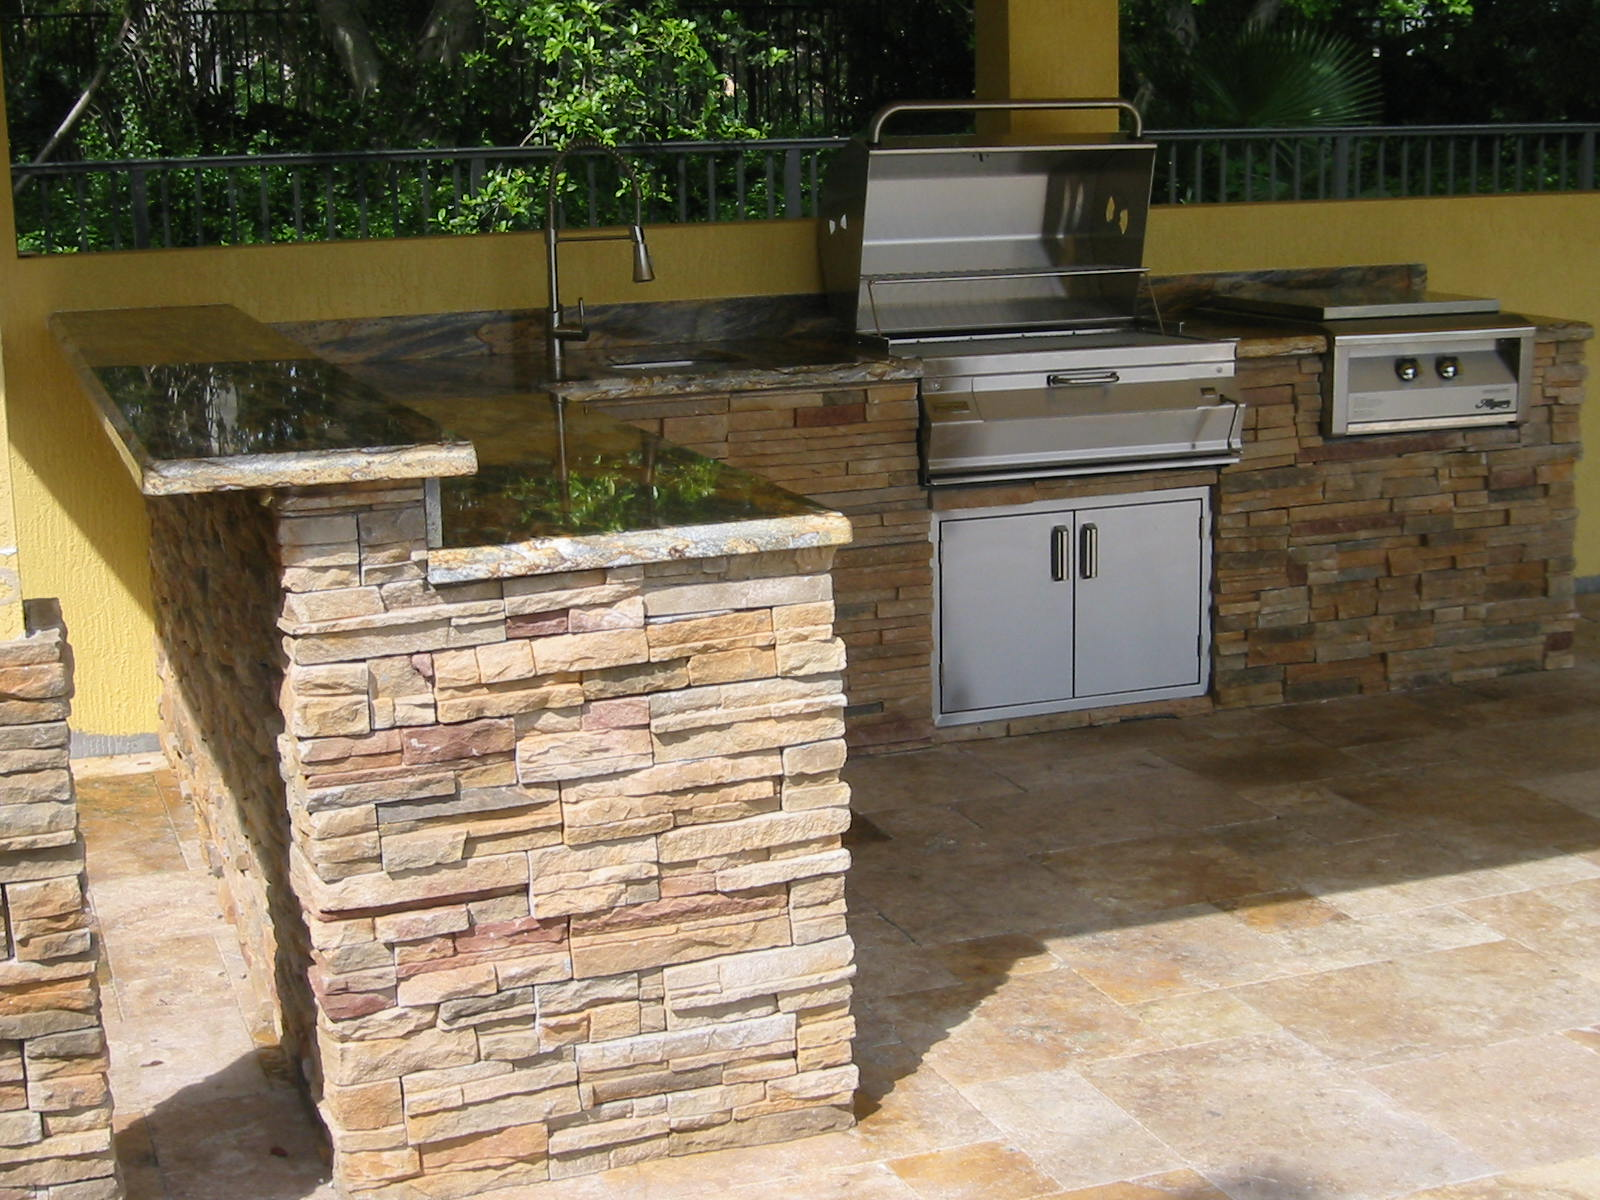 Alfresco Outdoor Kitchens We Love The Great Outdoor Kitchen Bbq Grills Grill Repair Parts